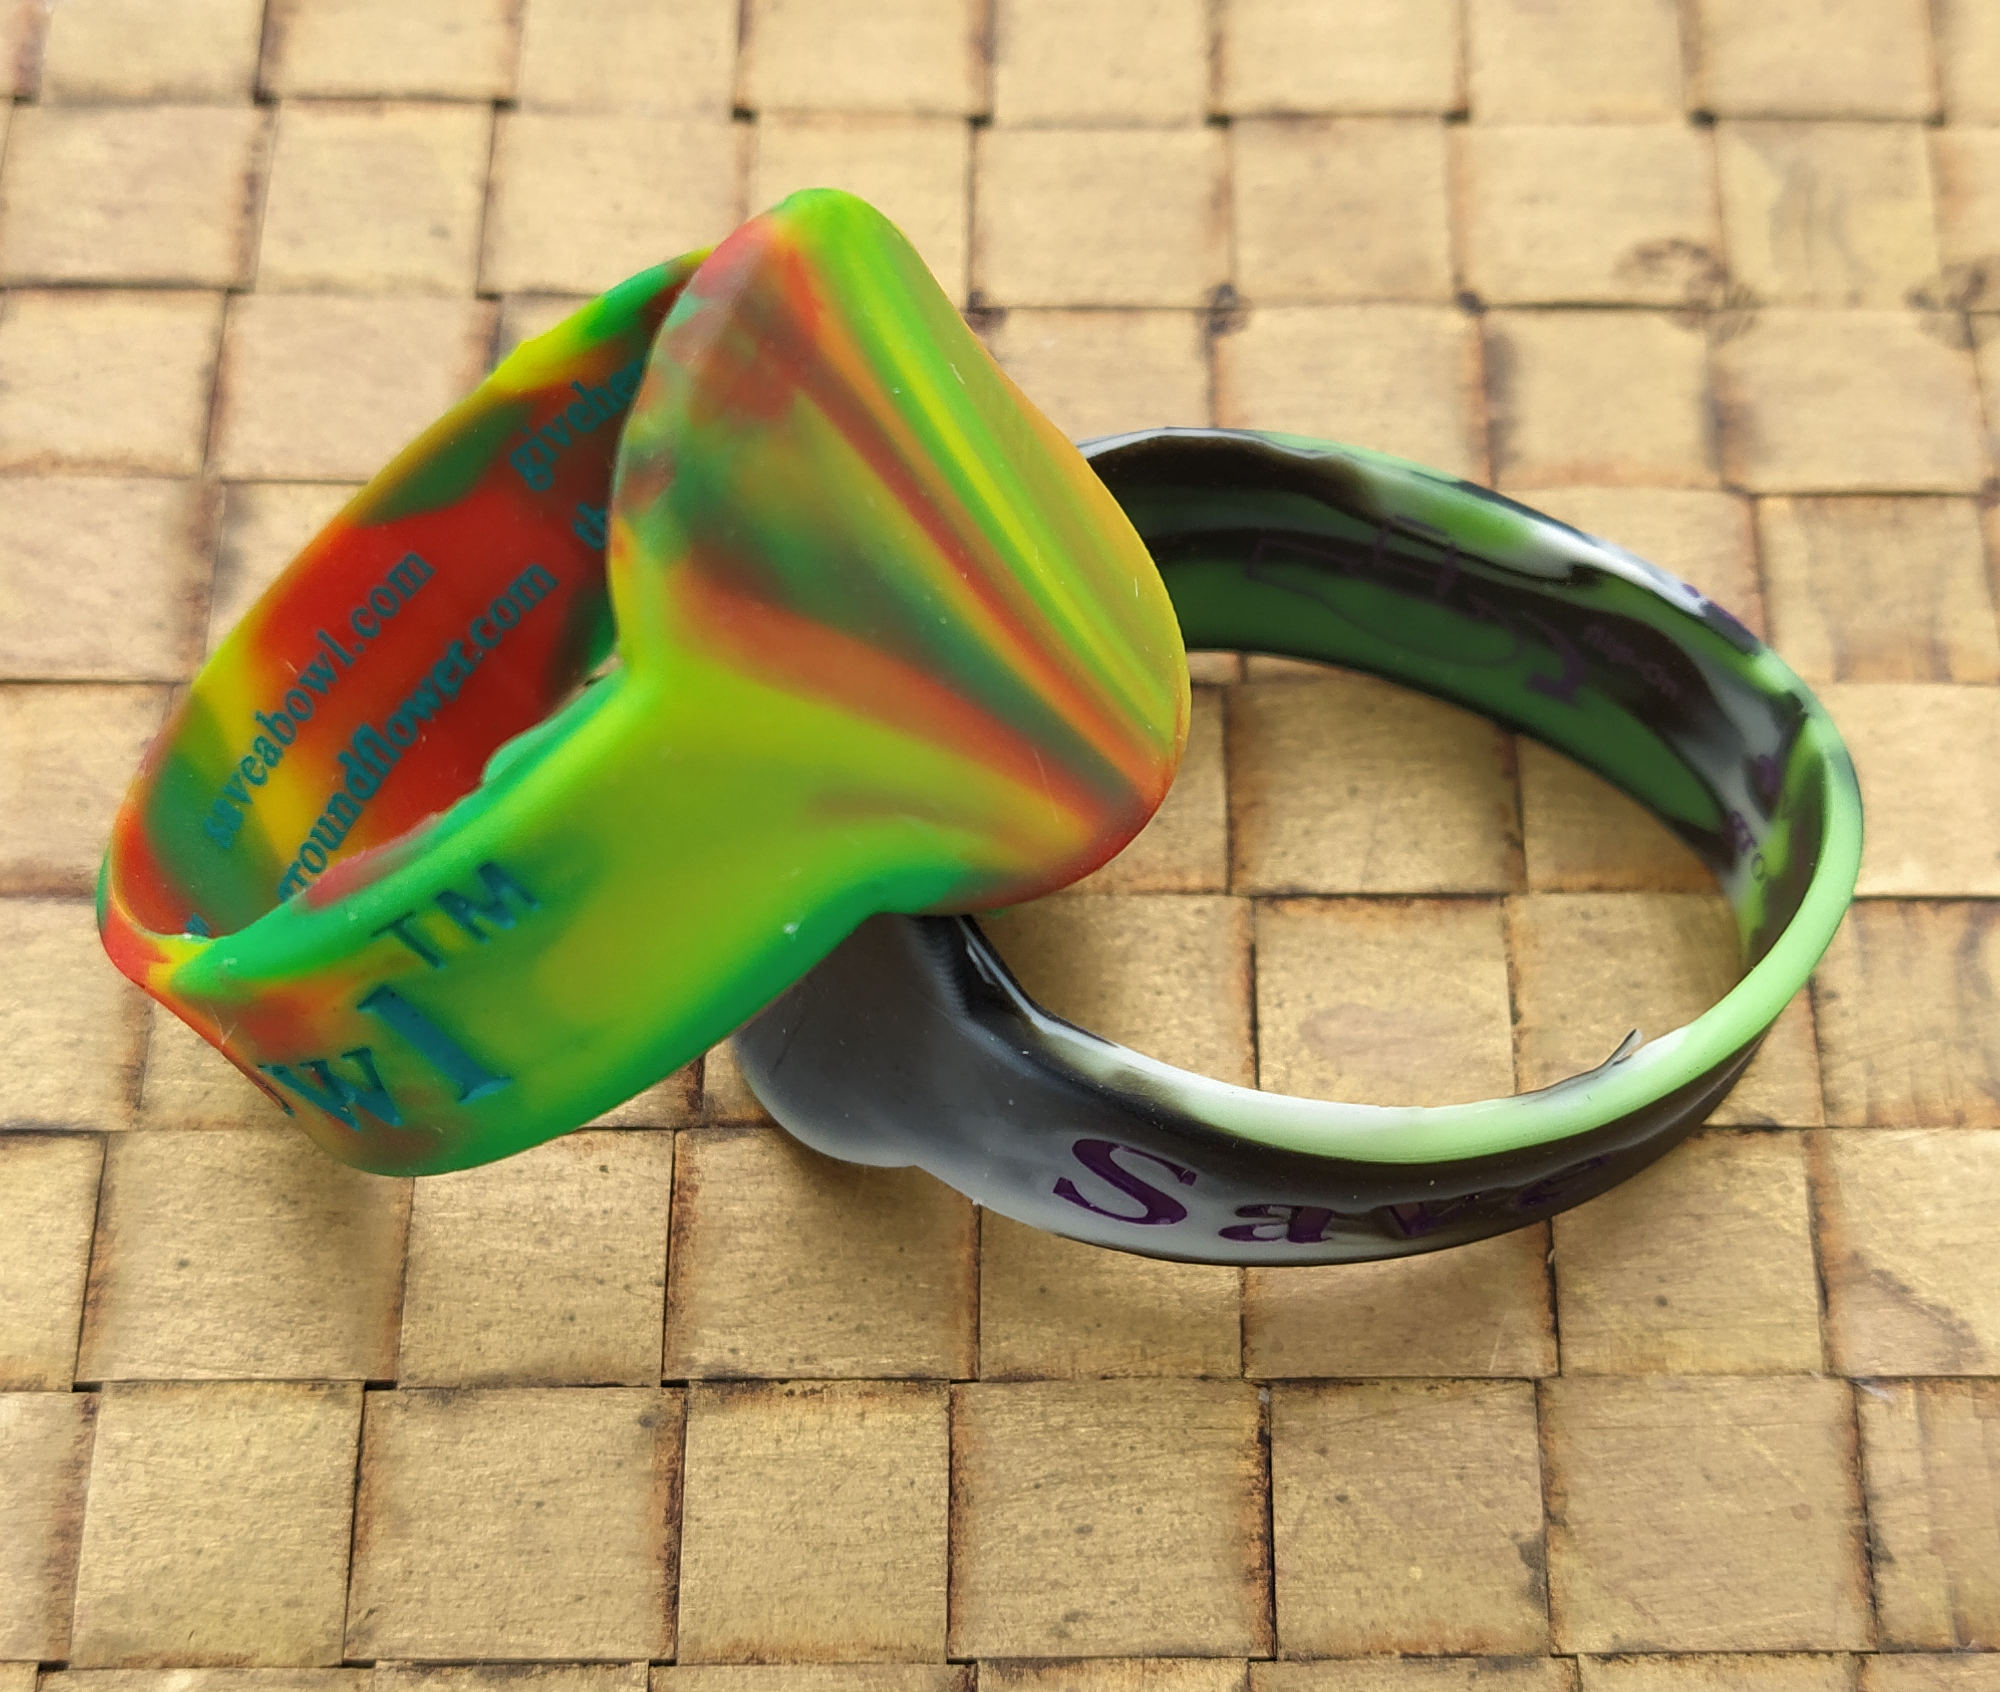 image of 2 different colore save-a-bowls on a glass pipe